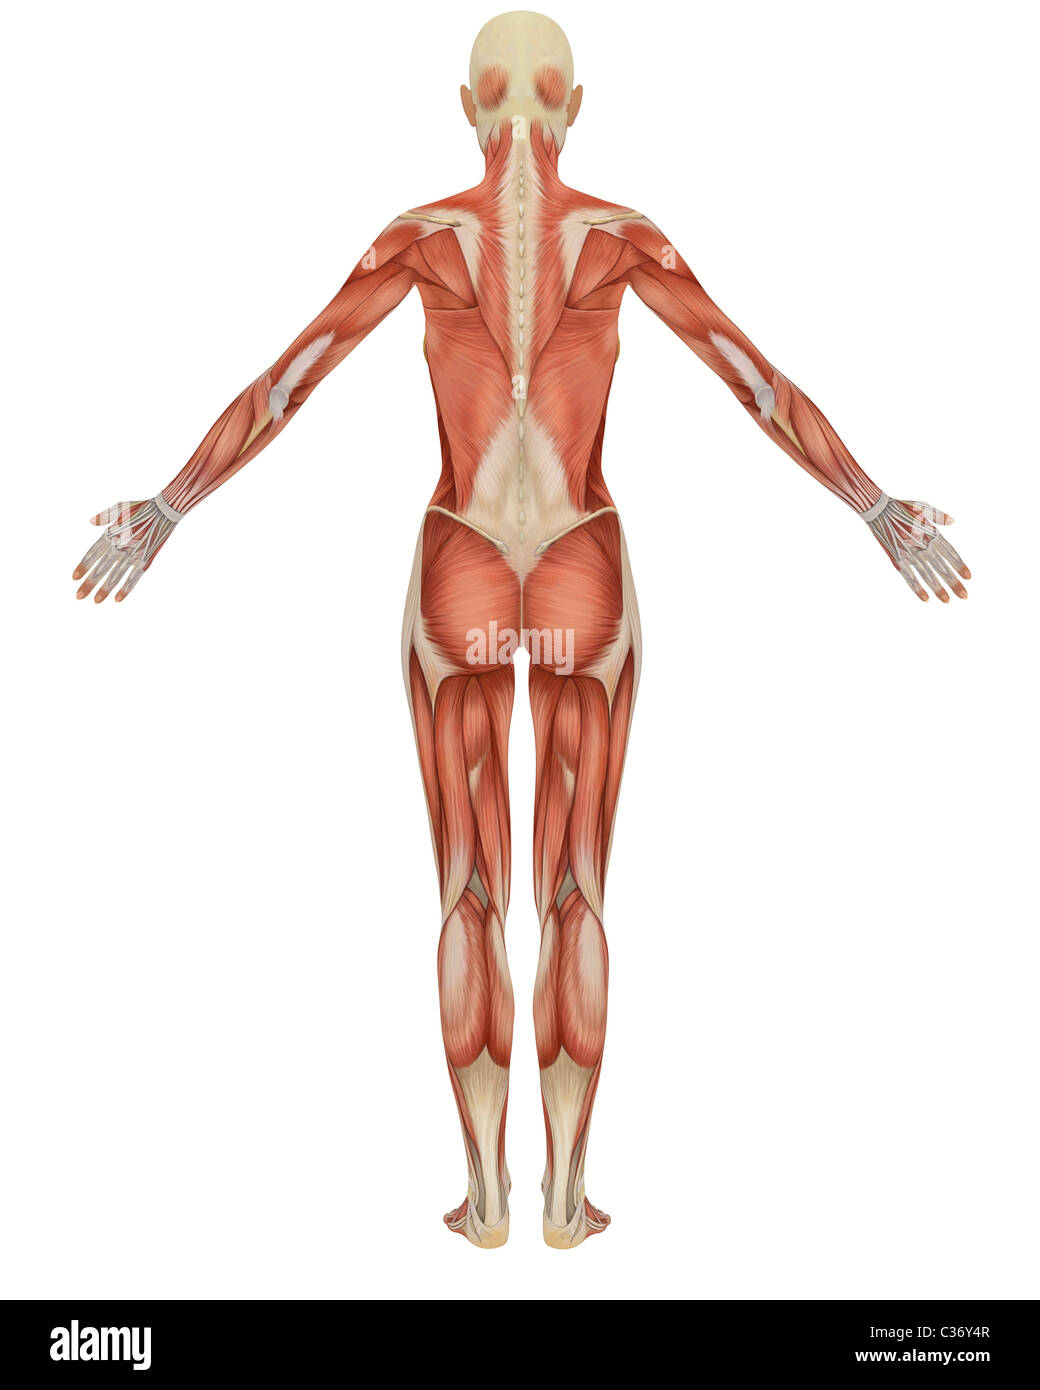 Female Anatomy Diagram Stock Photos Female Anatomy Diagram Stock